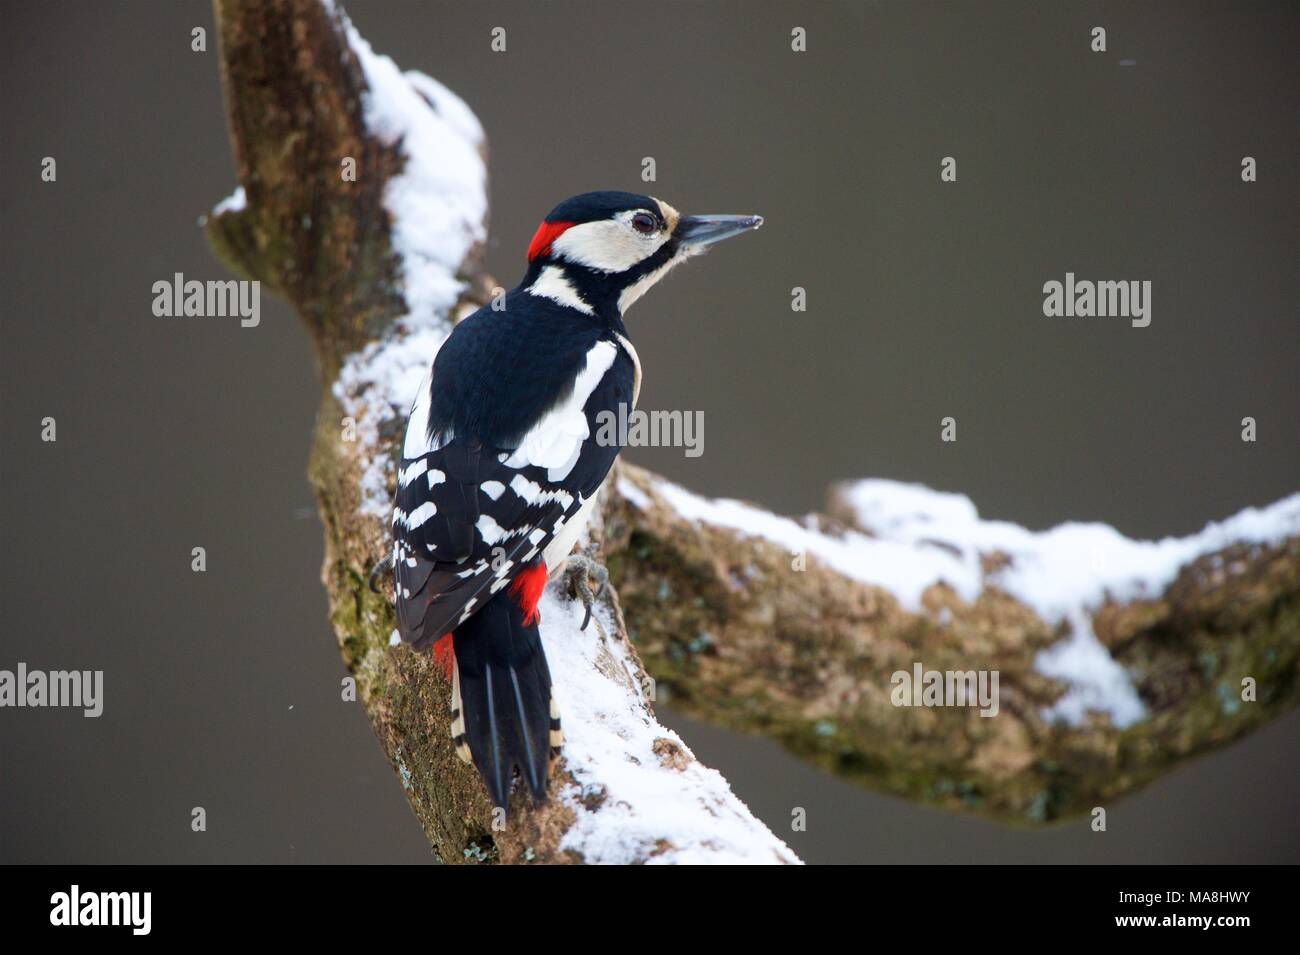 Male Great Spotted Woodpecker perched in a snowed tree branch. Stock Photo